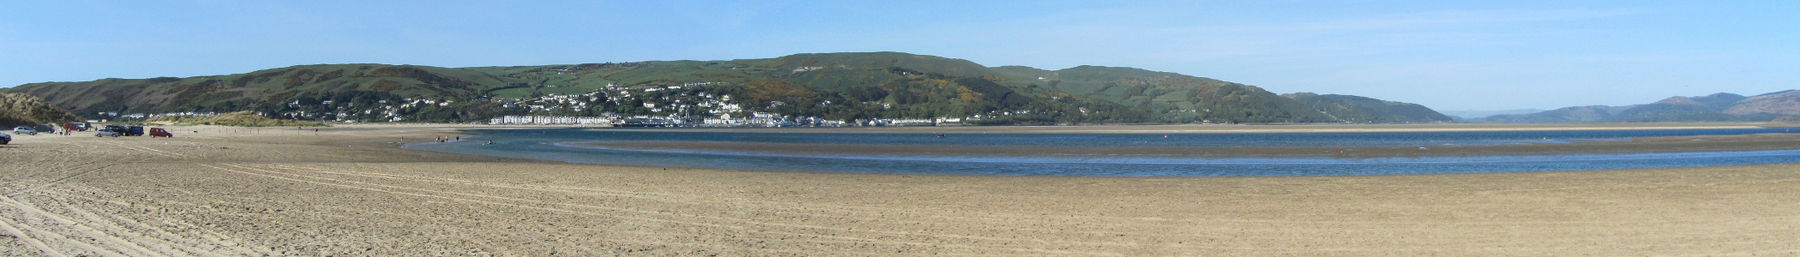 Aberdyfi banner Panorama across beach at low tide.jpg